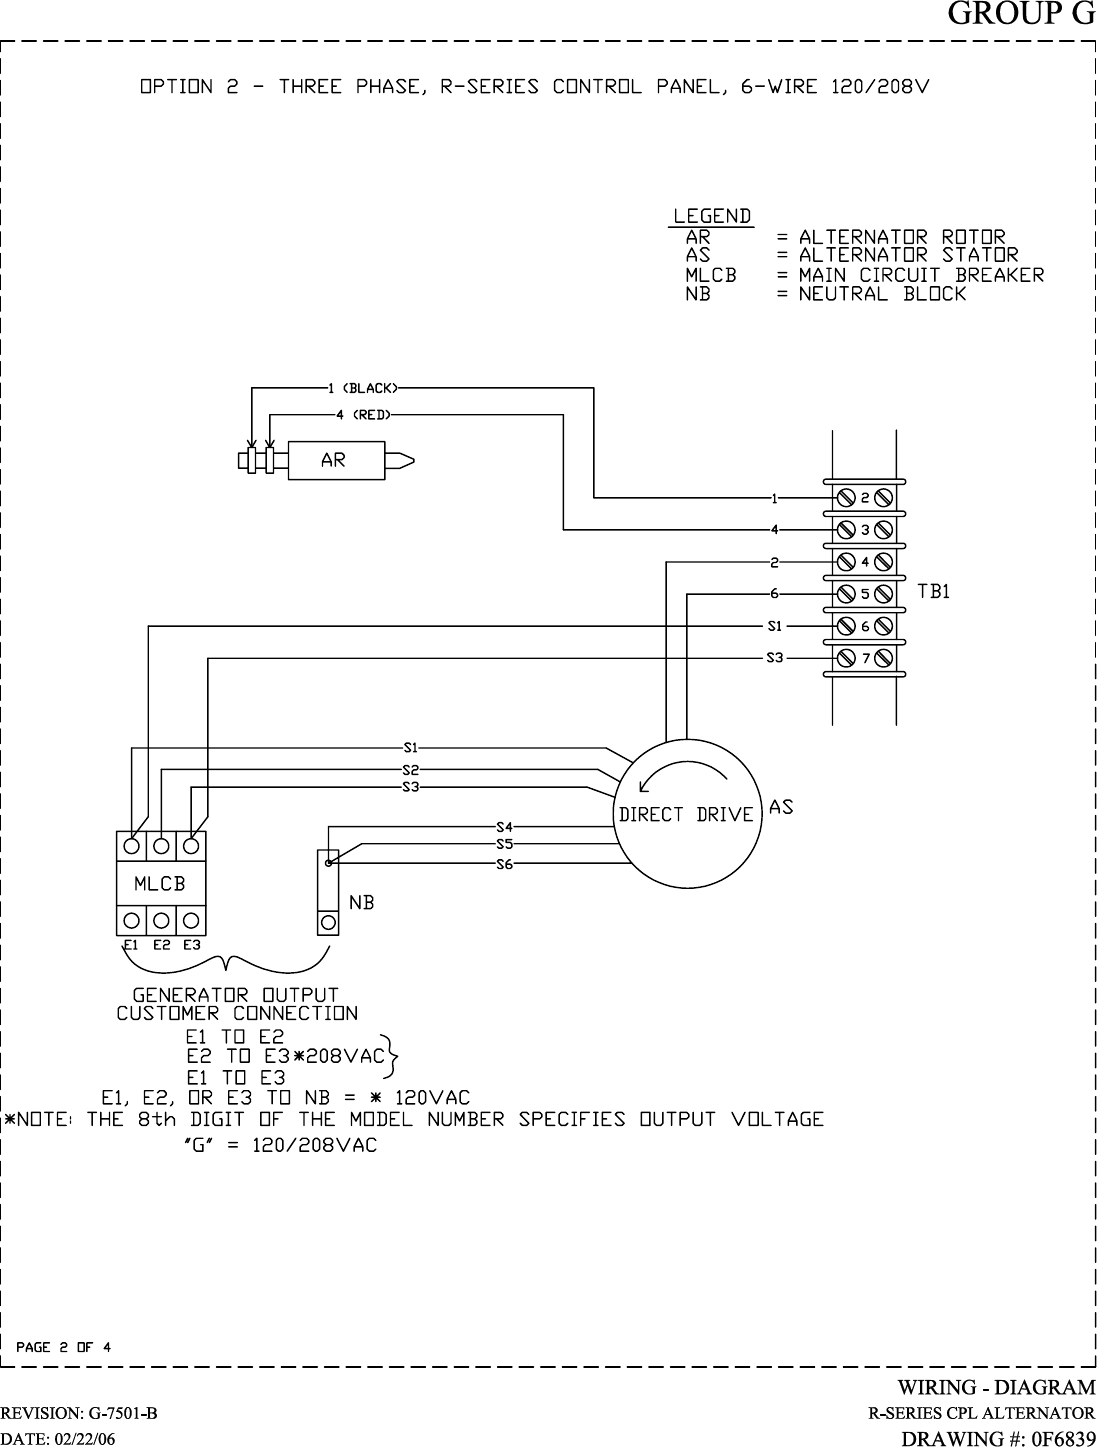 Generac Power Systems 005336 0 005337 Users Manual Cover079 Rev0 07 06 M6 Fuse Diagram 17 022473 6 Washer Flat 1 4 Zinc